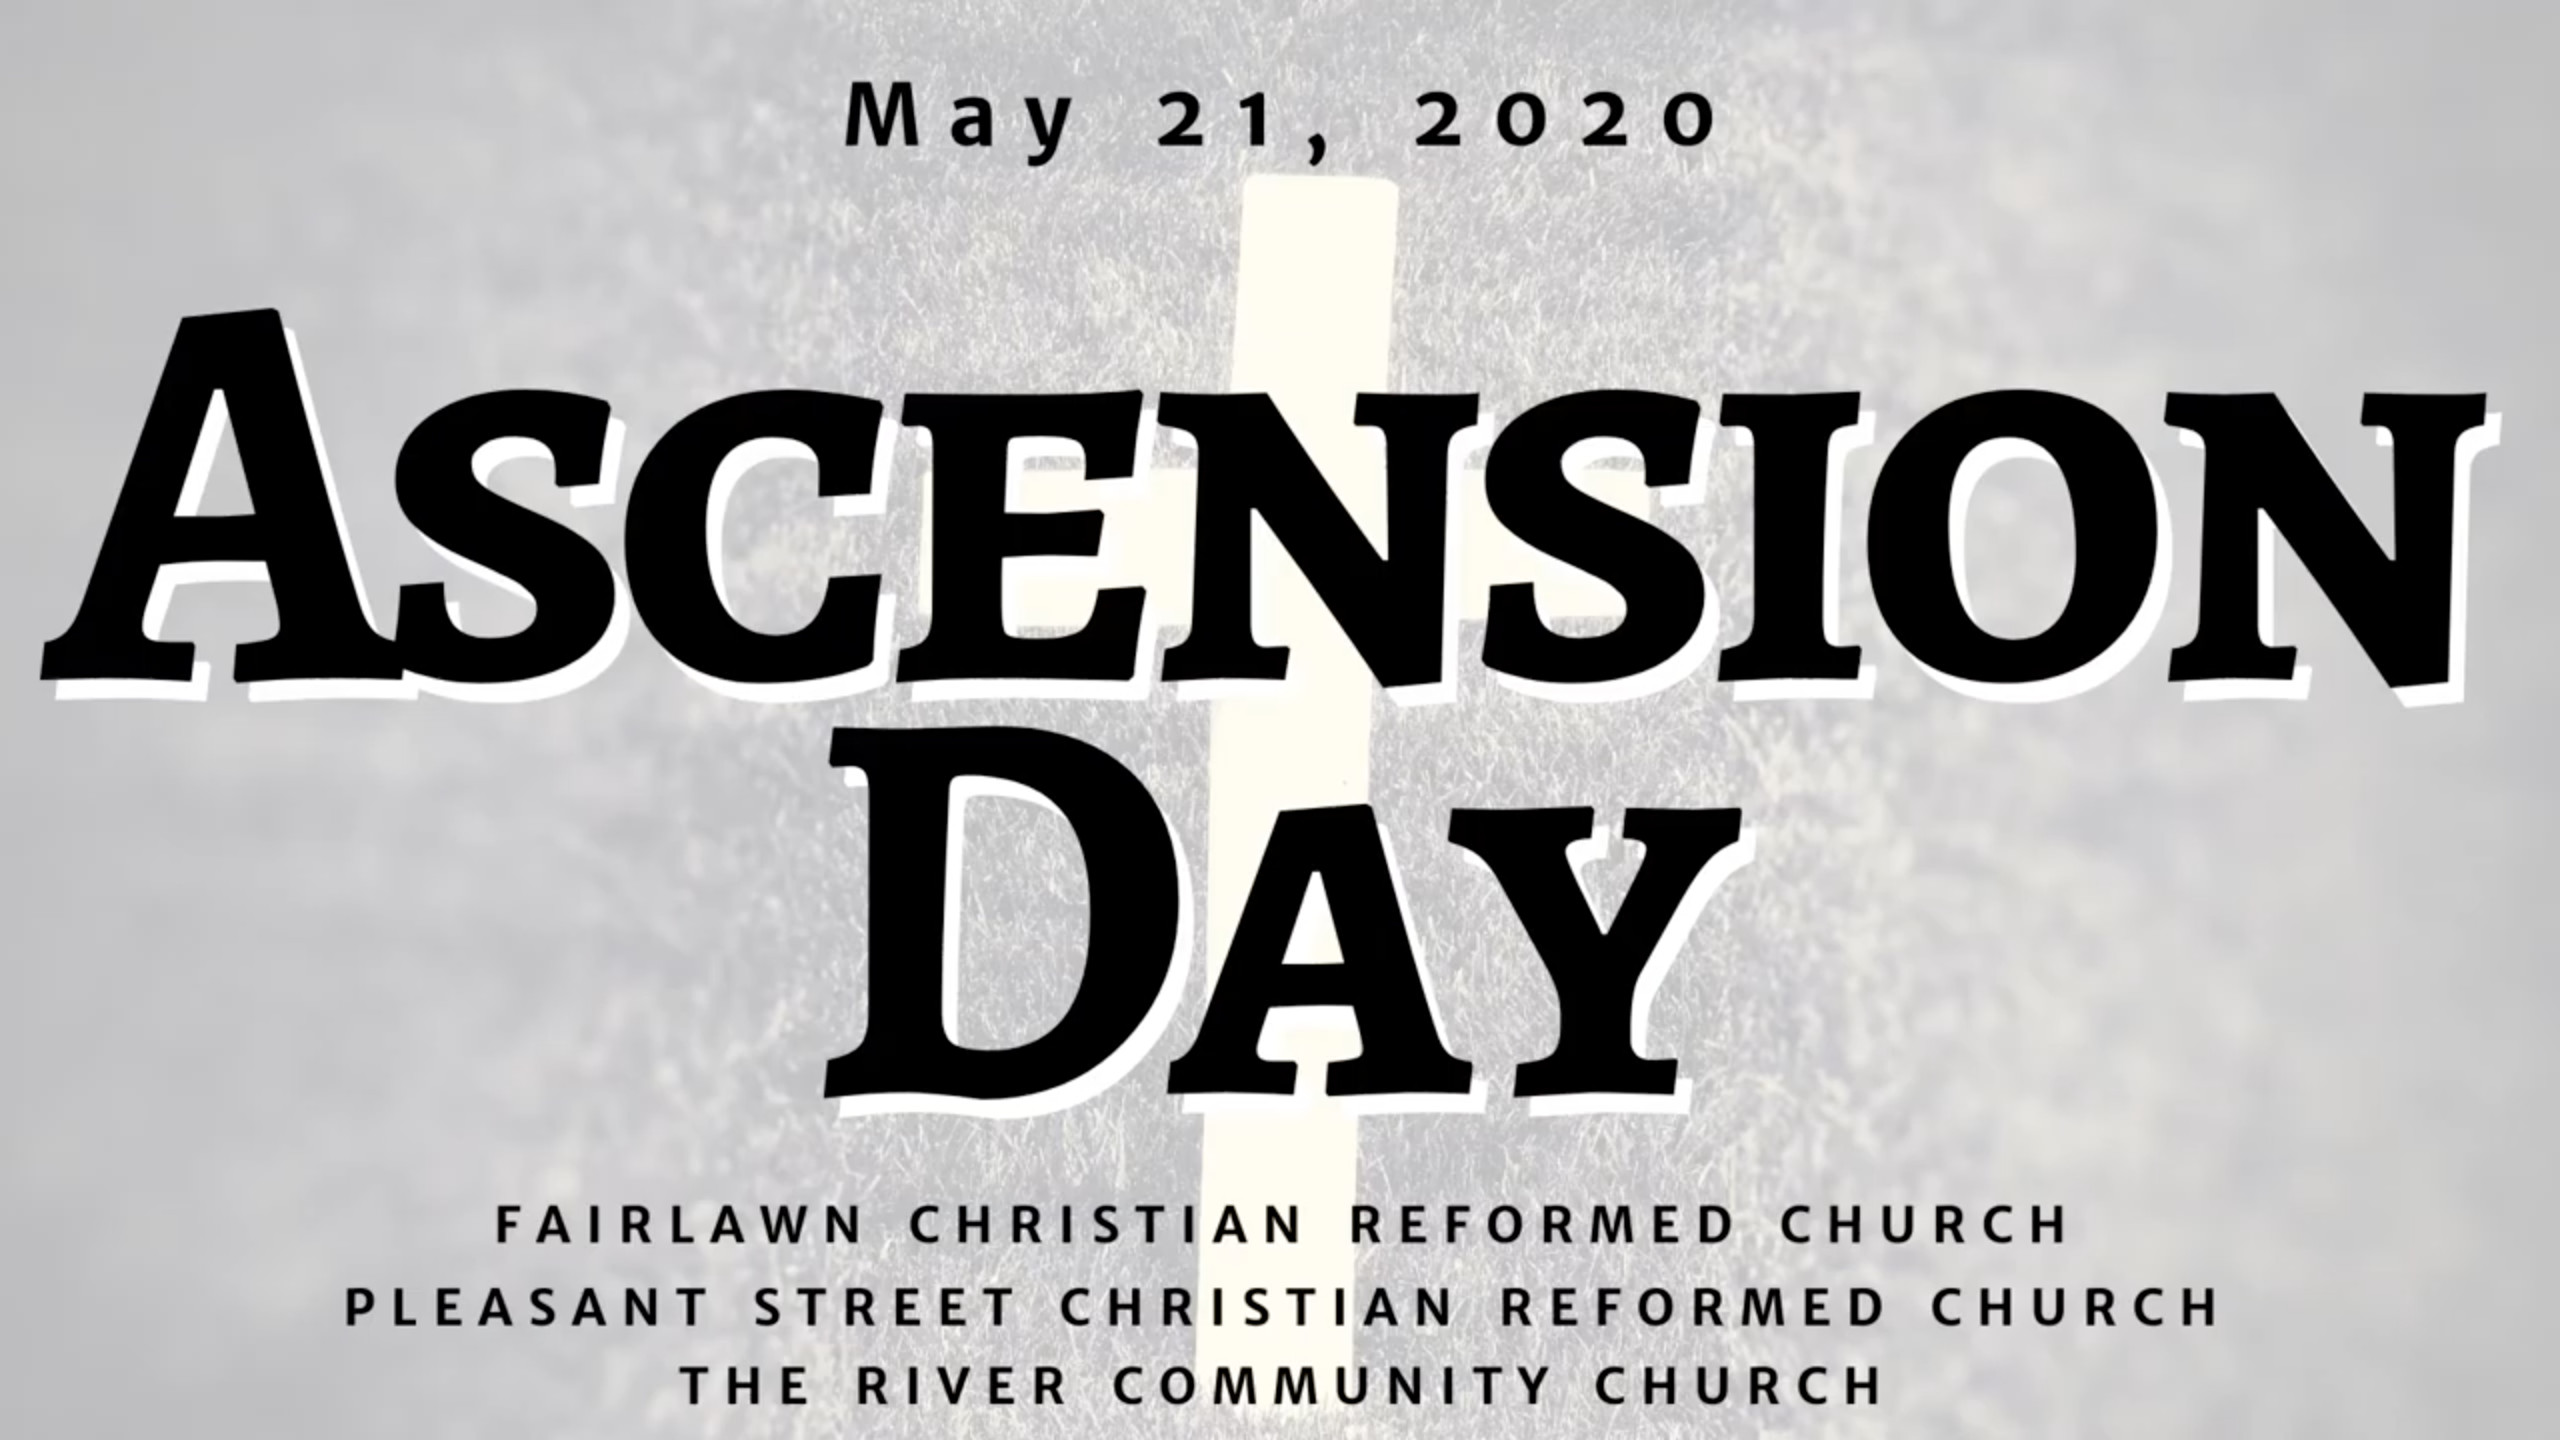 Ascension Day 2020 banner